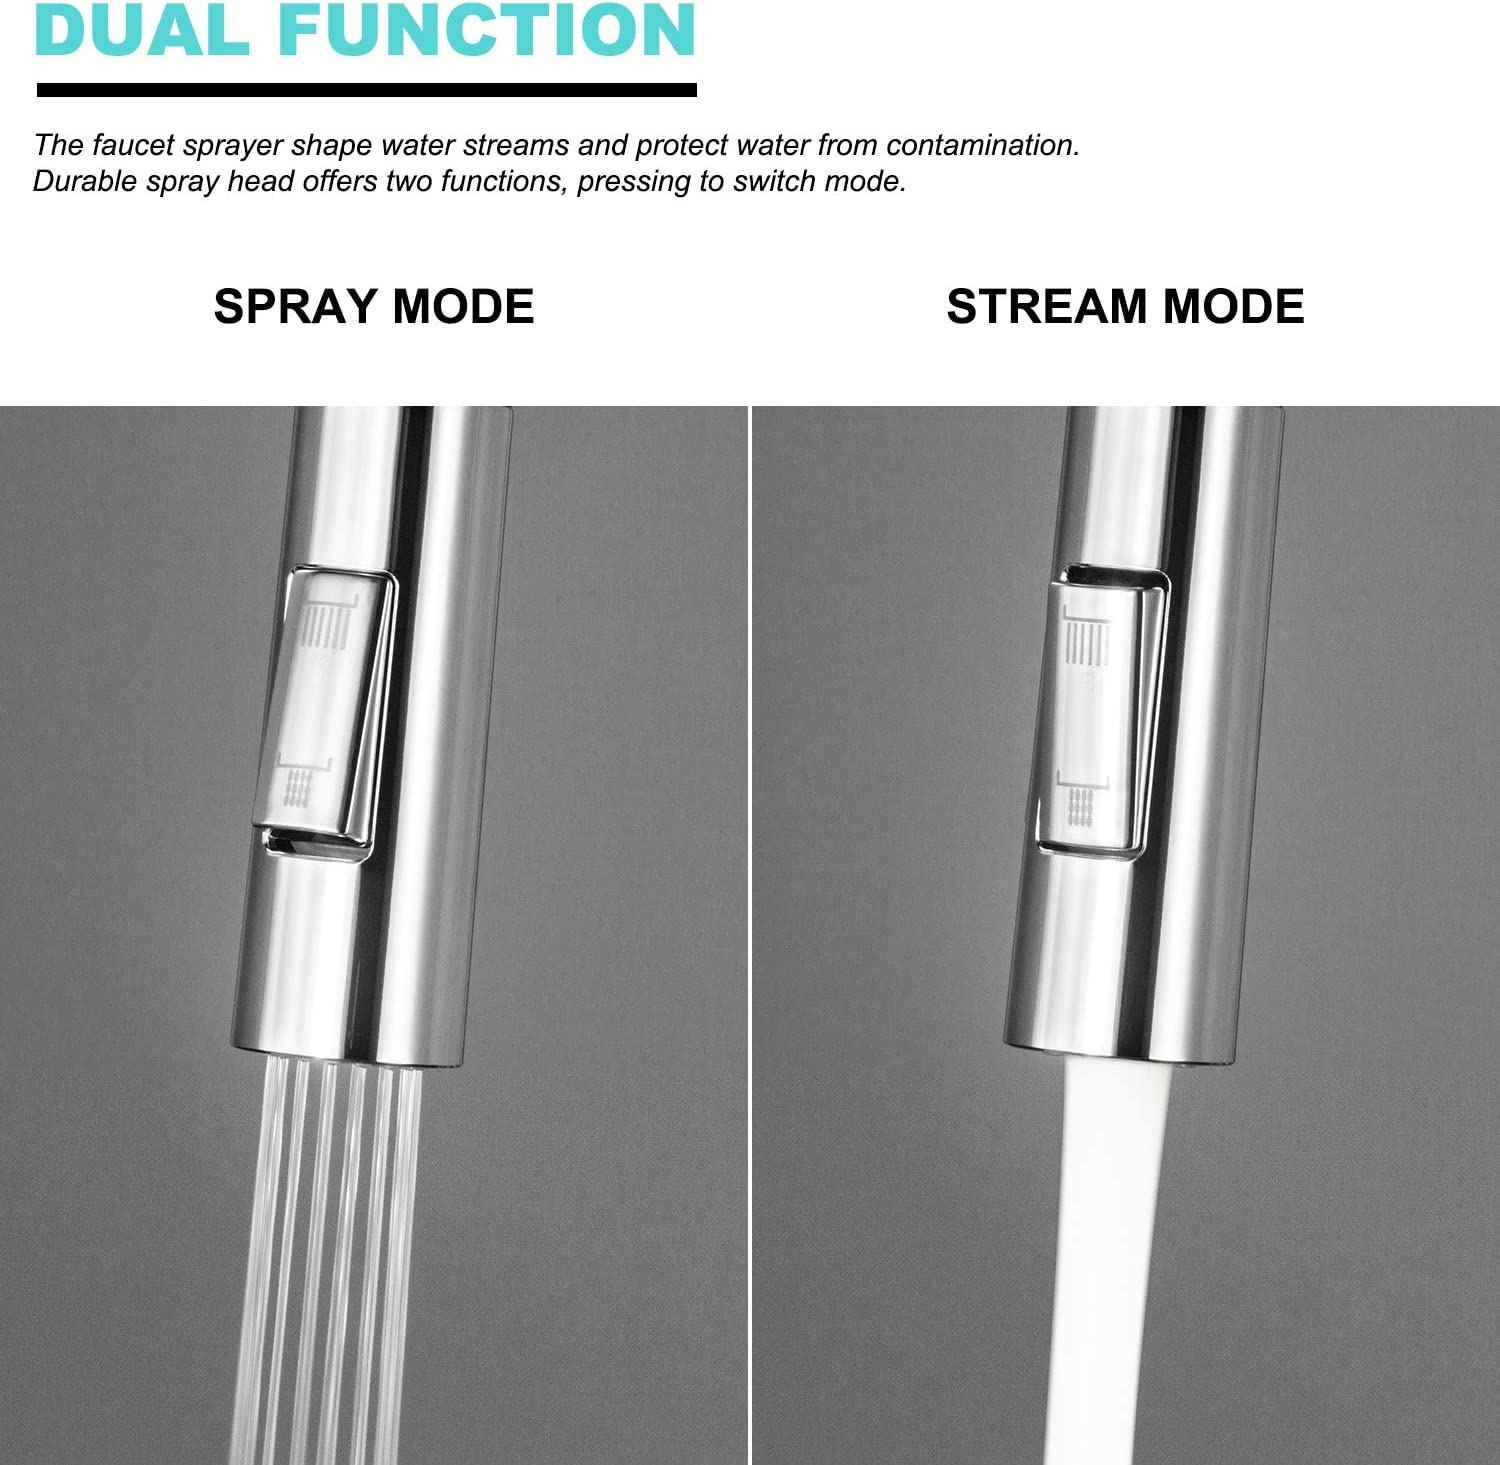 Pull Down Kitchen Faucet Spray Head D1003BR KOKOSIRI Nozzle Spout Replacement Part 3-Functions G 1//2 Pull Out Spray Head Brushed Nickel